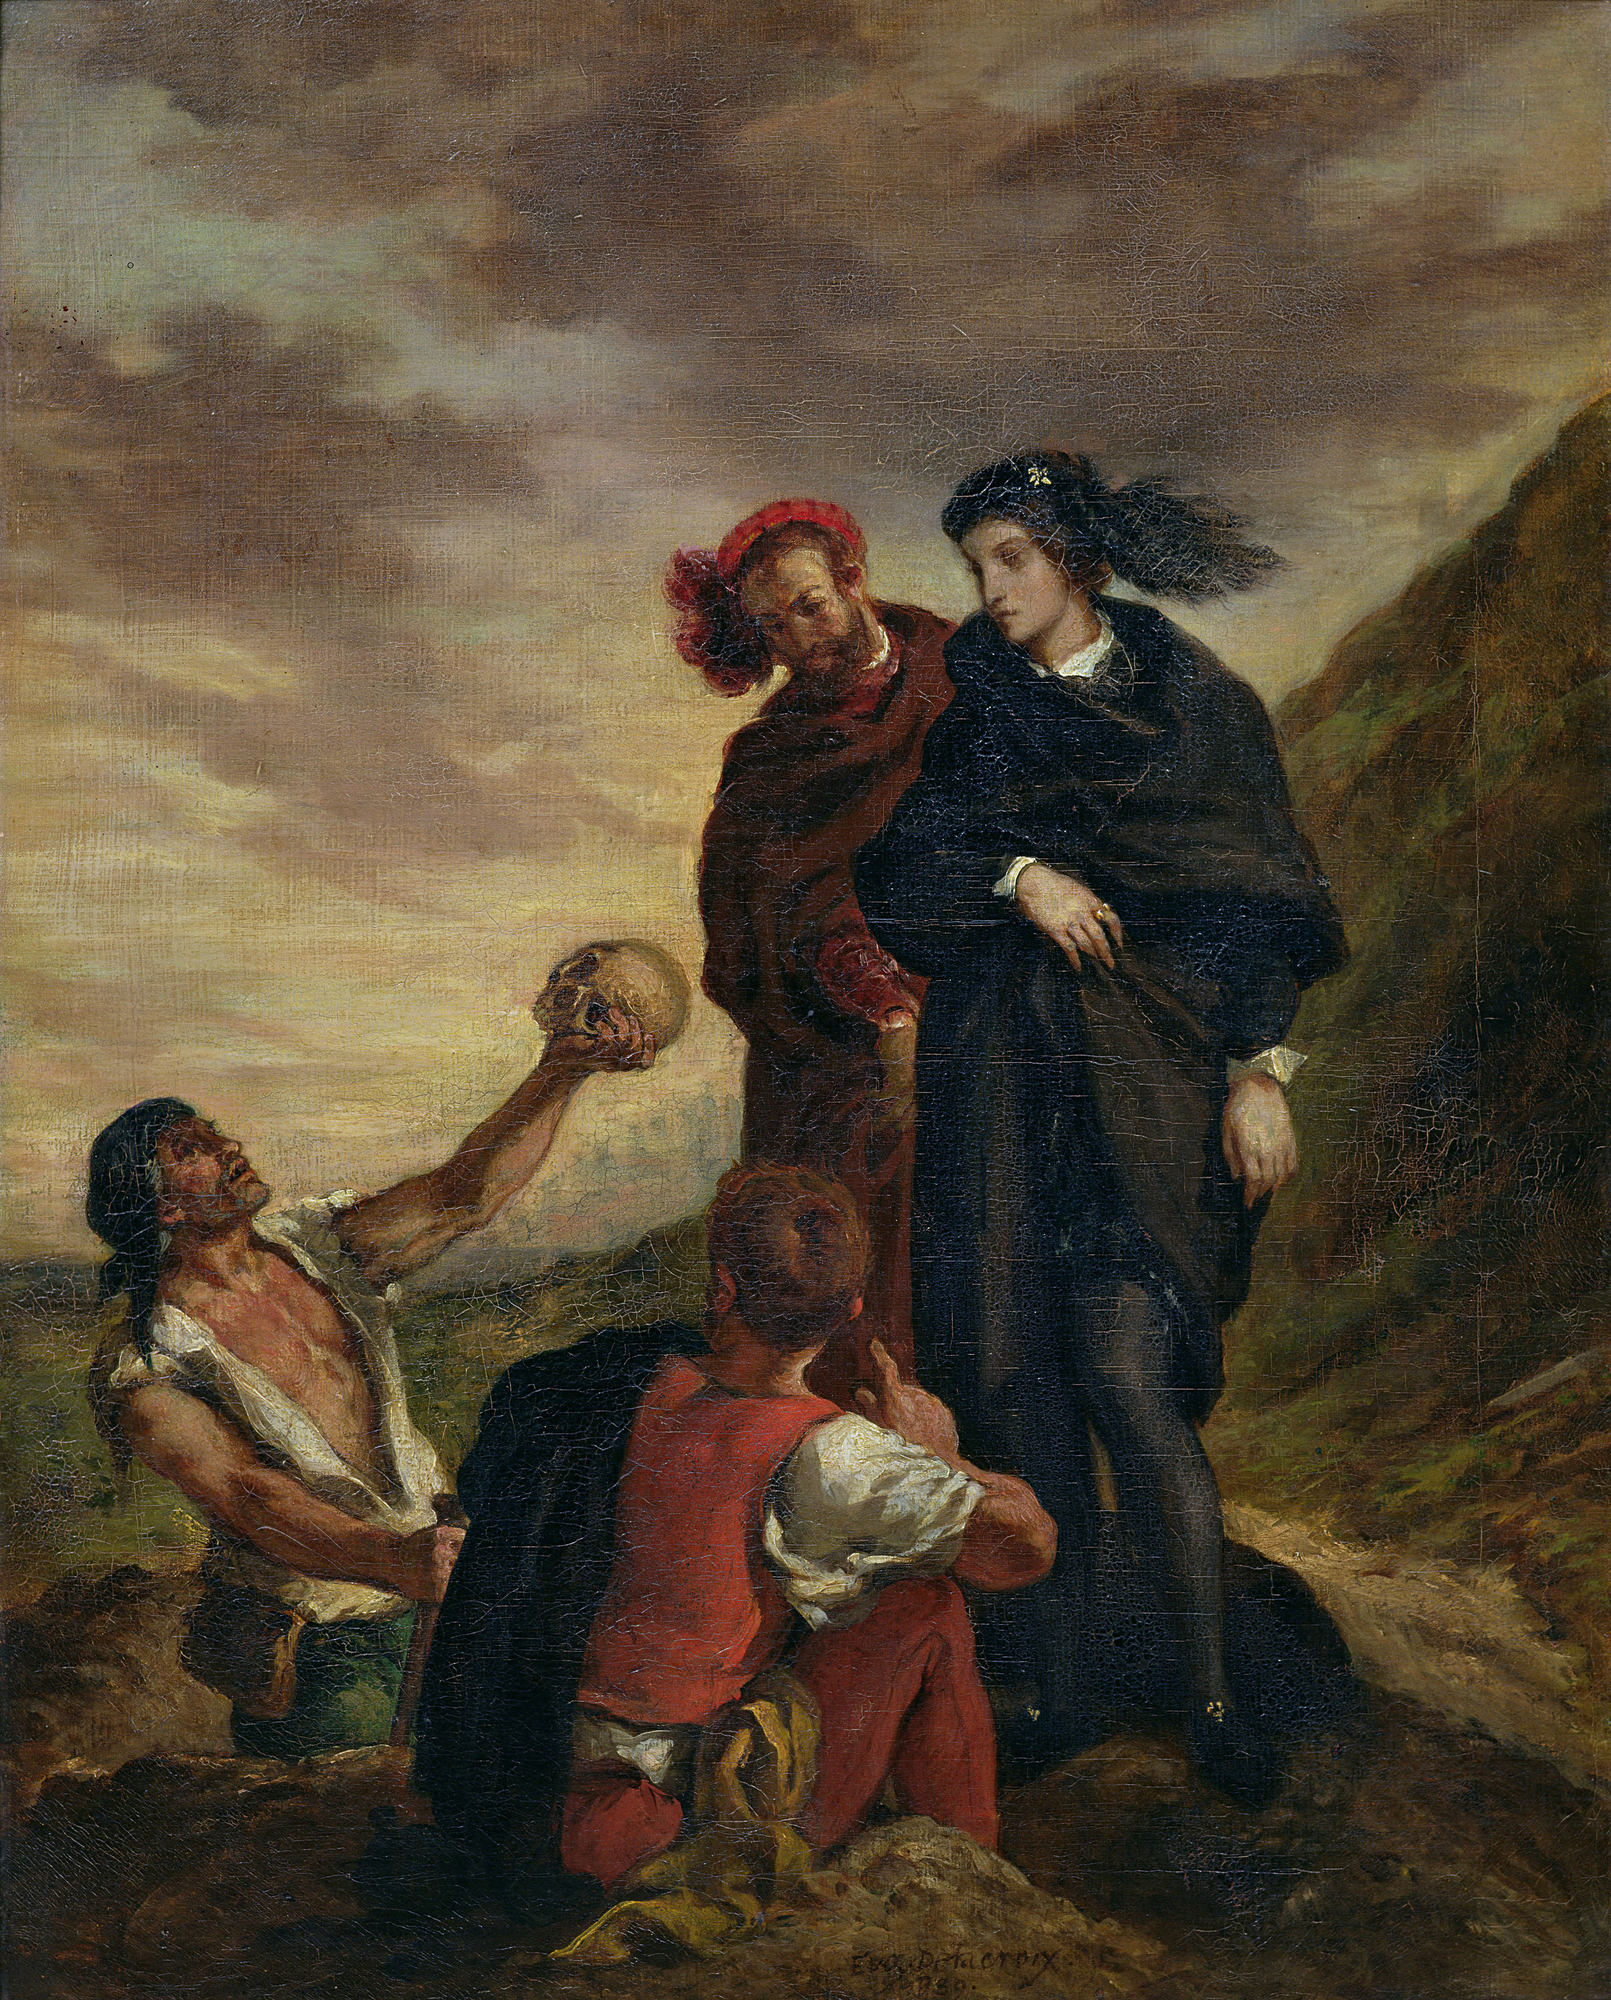 the deception of horatio in william shakespeares hamlet Essays on hamlet and deception examine william shakespeare's hamlet and focuses on the common theme of deception.